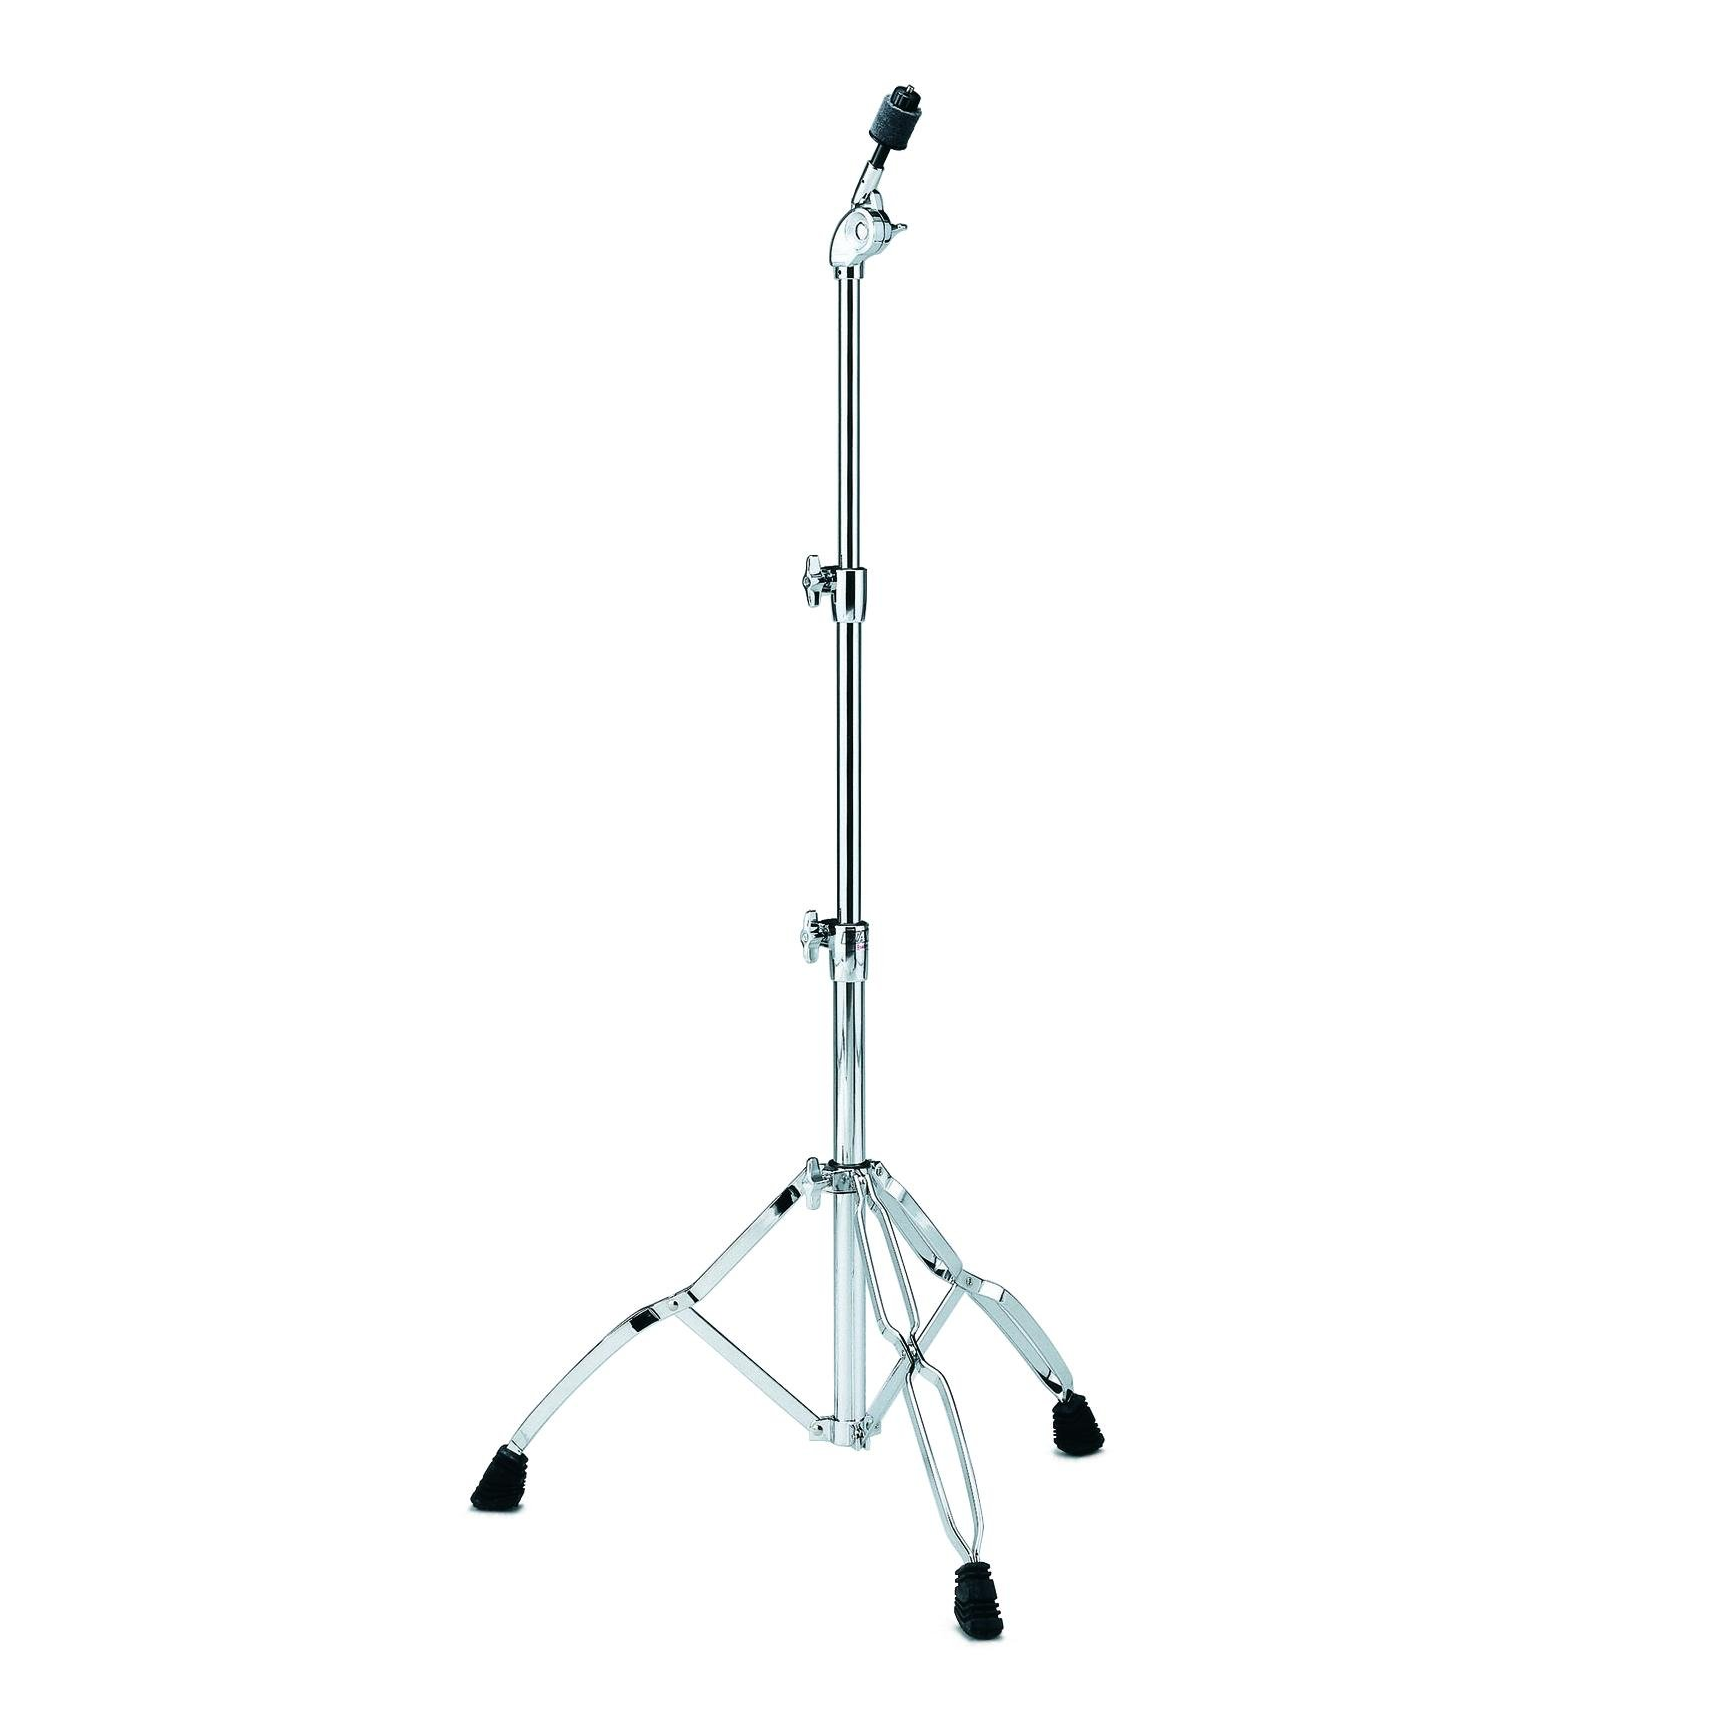 Tama HC72WN RoadPro Double-Braced Straight Cymbal Stand